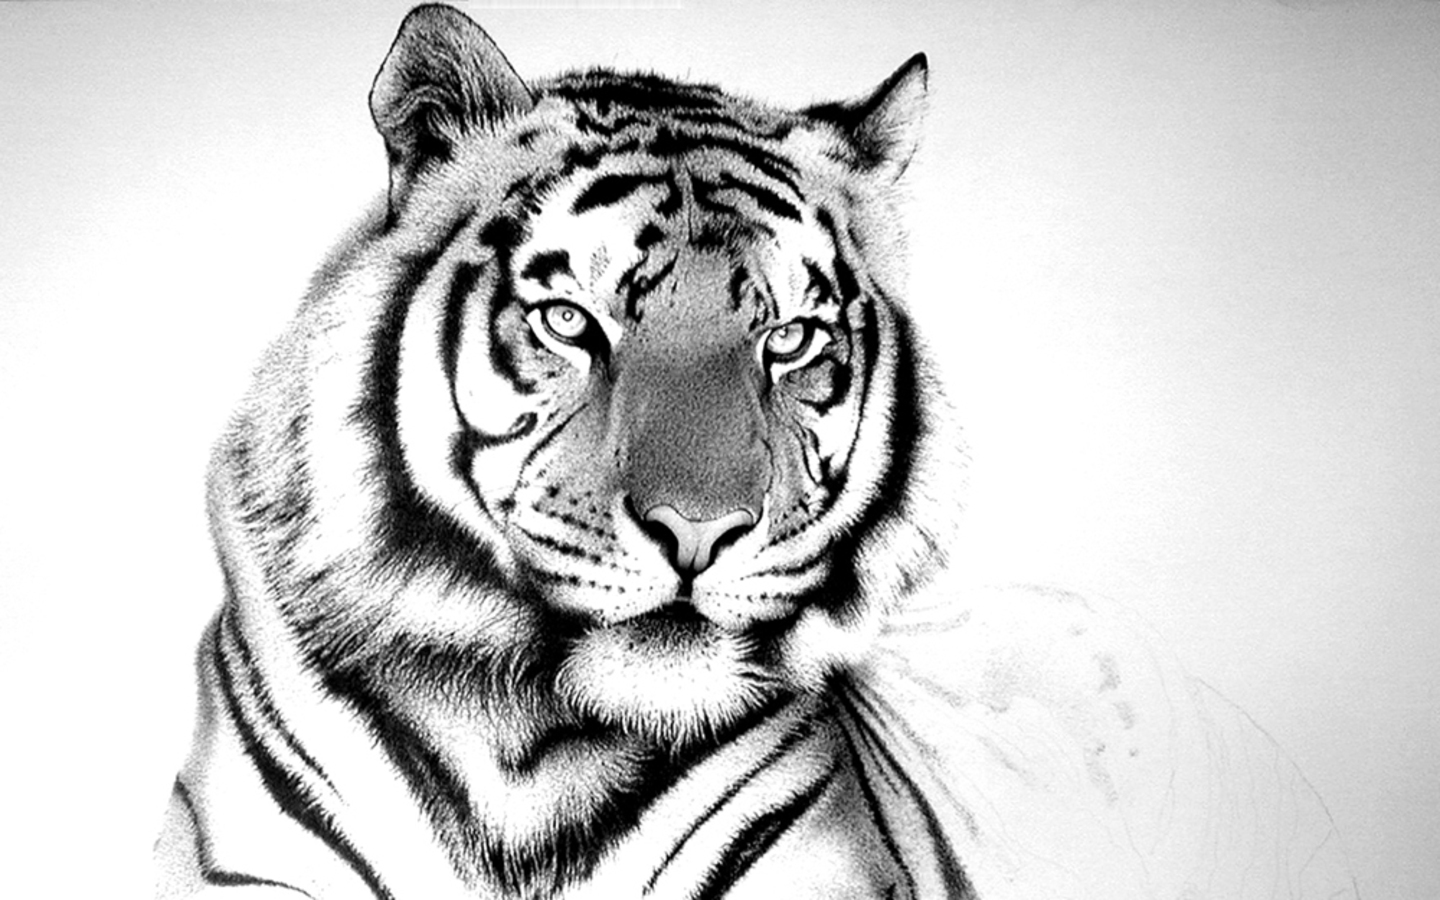 colourful wallpapers white black tiger